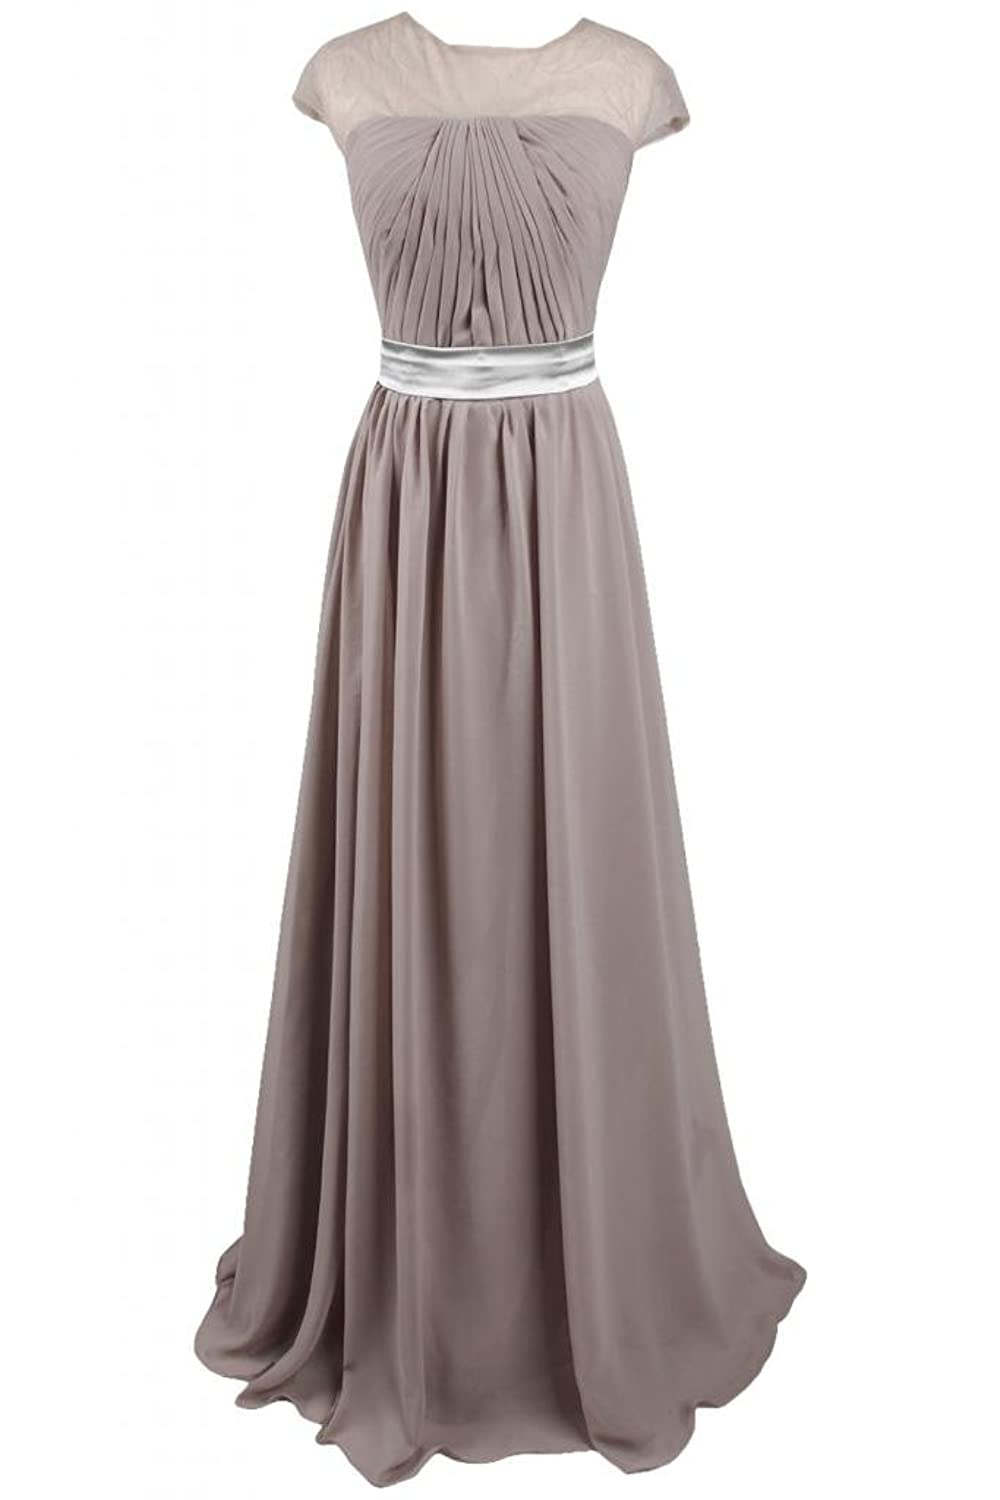 Sunvary Woman Simple Satin Jewel Full-Length Evening Party Dress Mother's Dress